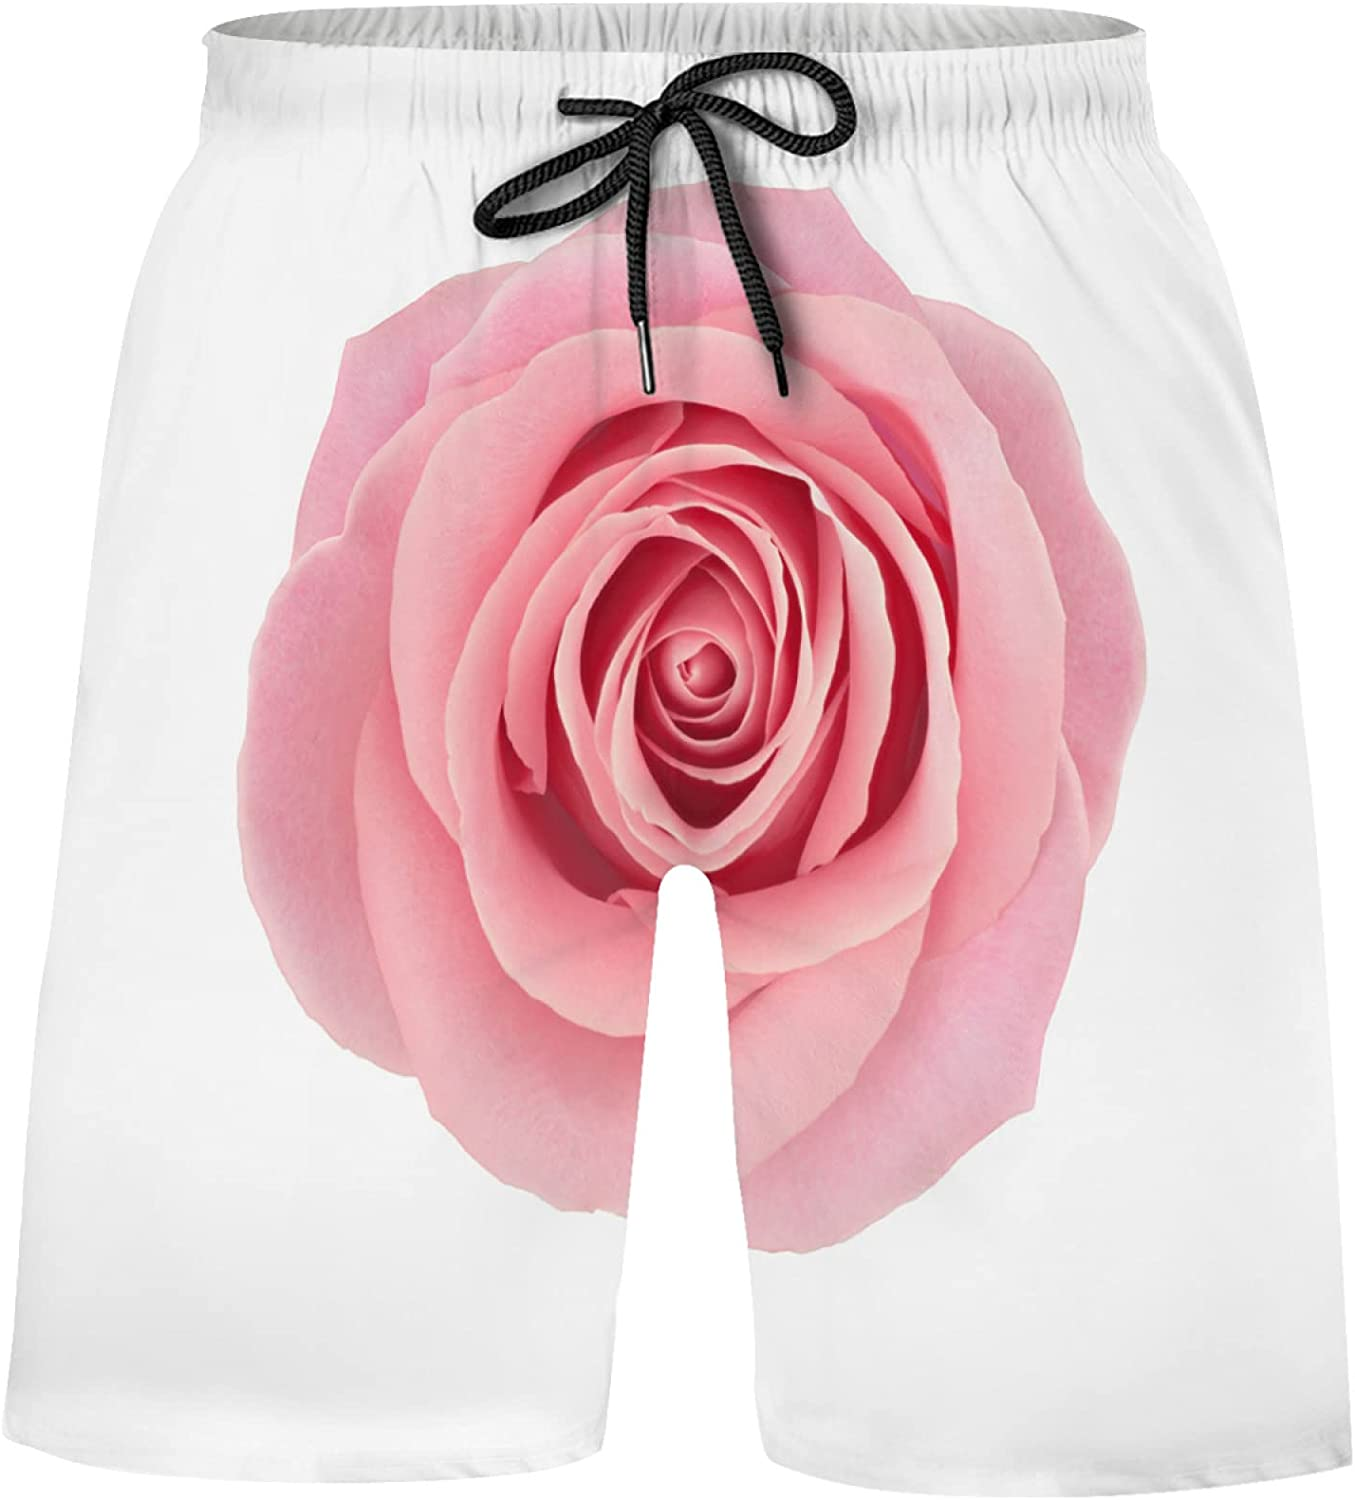 Coral Roses Product Flower On White Bathing Suits Swim Shorts Miami Mall T Athletic